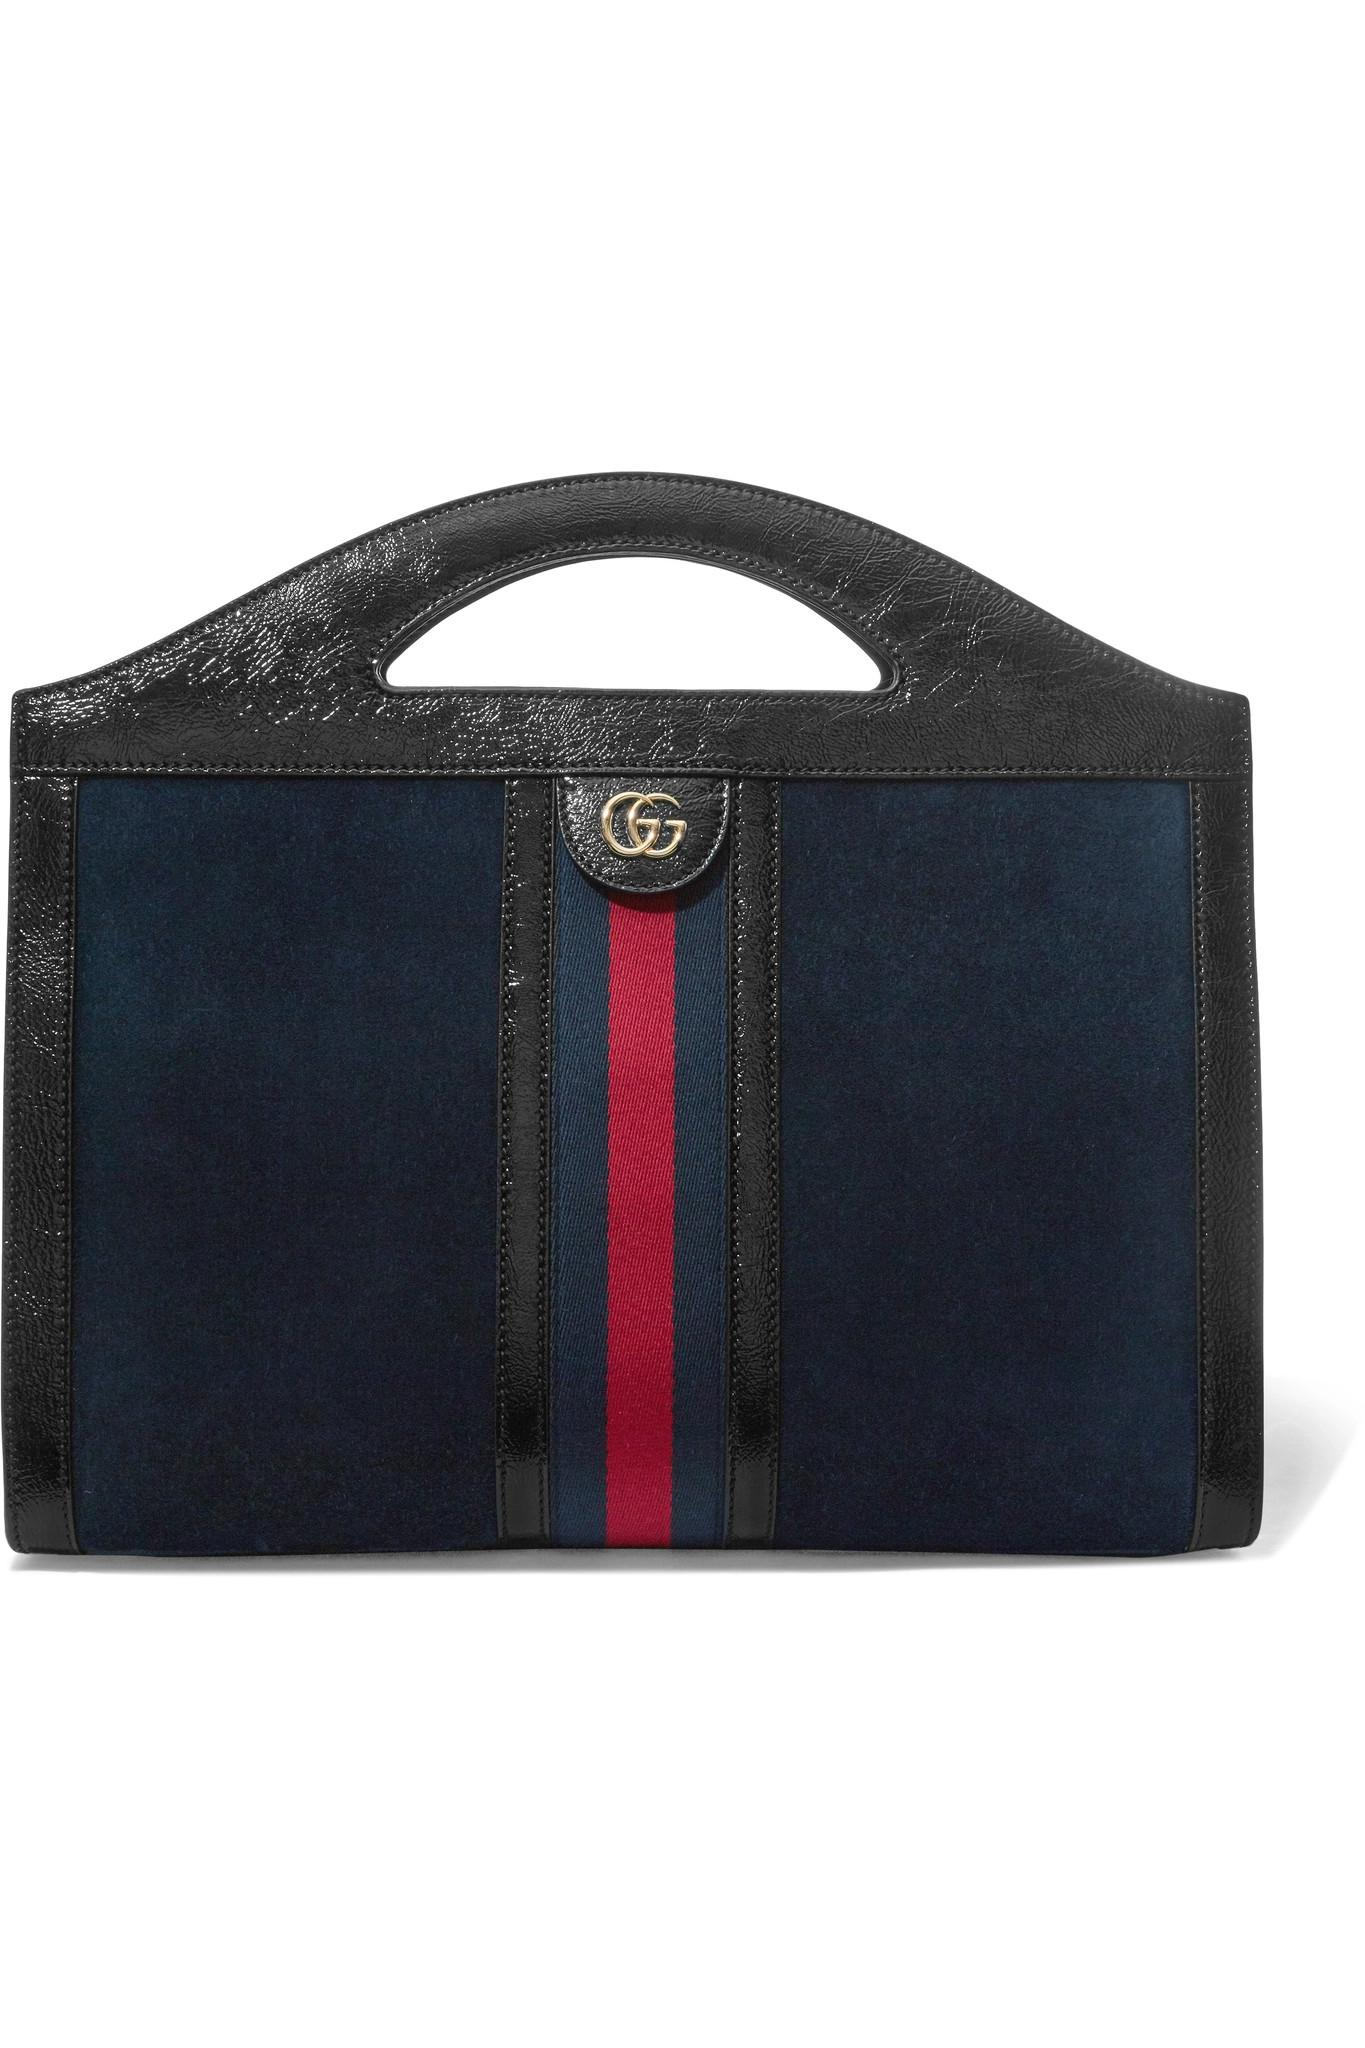 7e3faf32a0e5 Gucci Ophidia Patent Leather-trimmed Suede Tote in Blue - Lyst